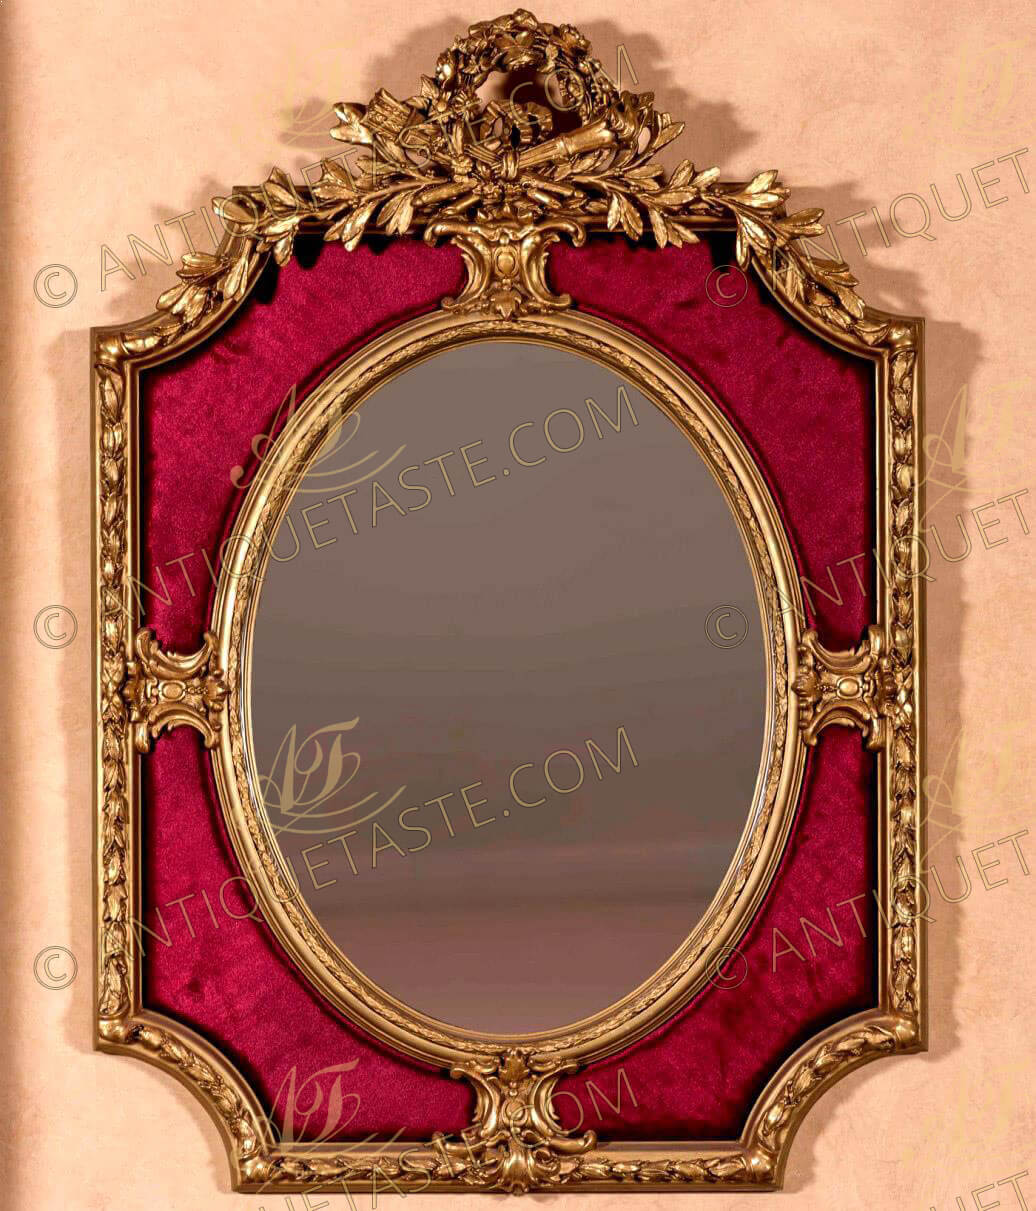 French mid 19th century Louis XVI period style finely carved double frame giltwood velvet upholstered overmantel mirror